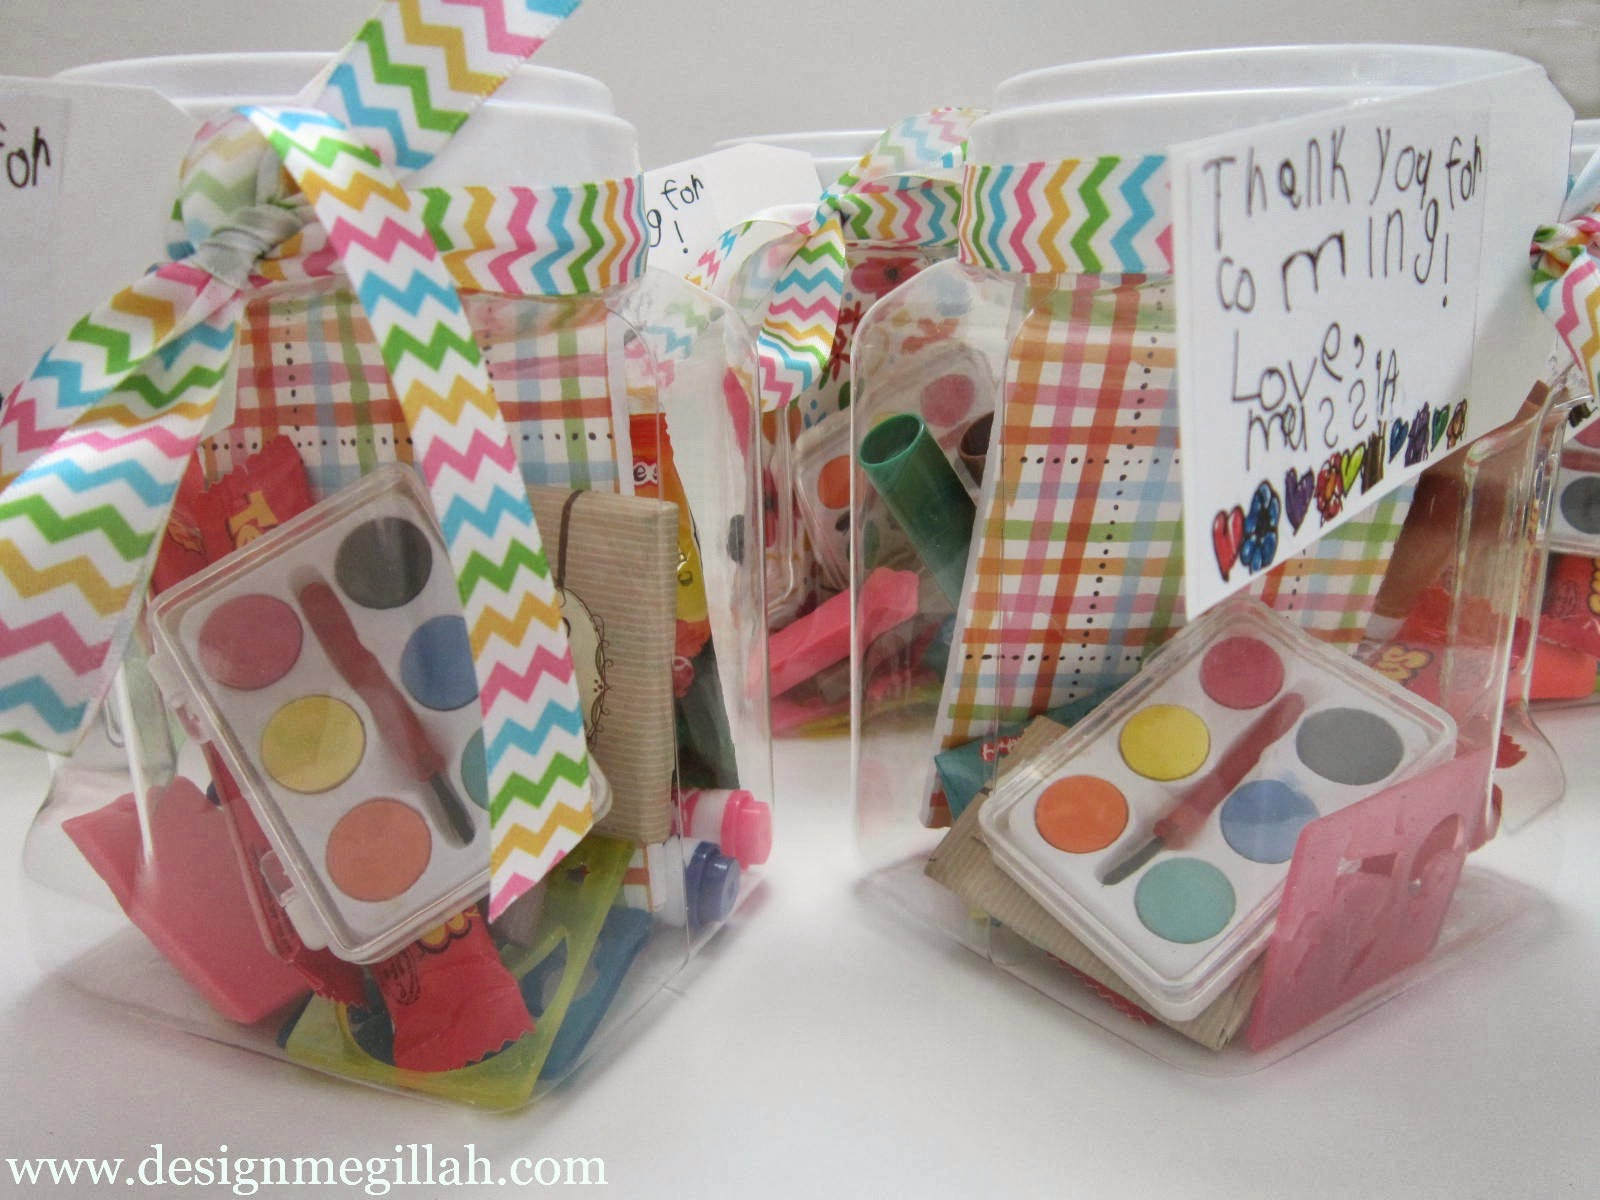 Design Megillah Favors For An Art Birthday Party